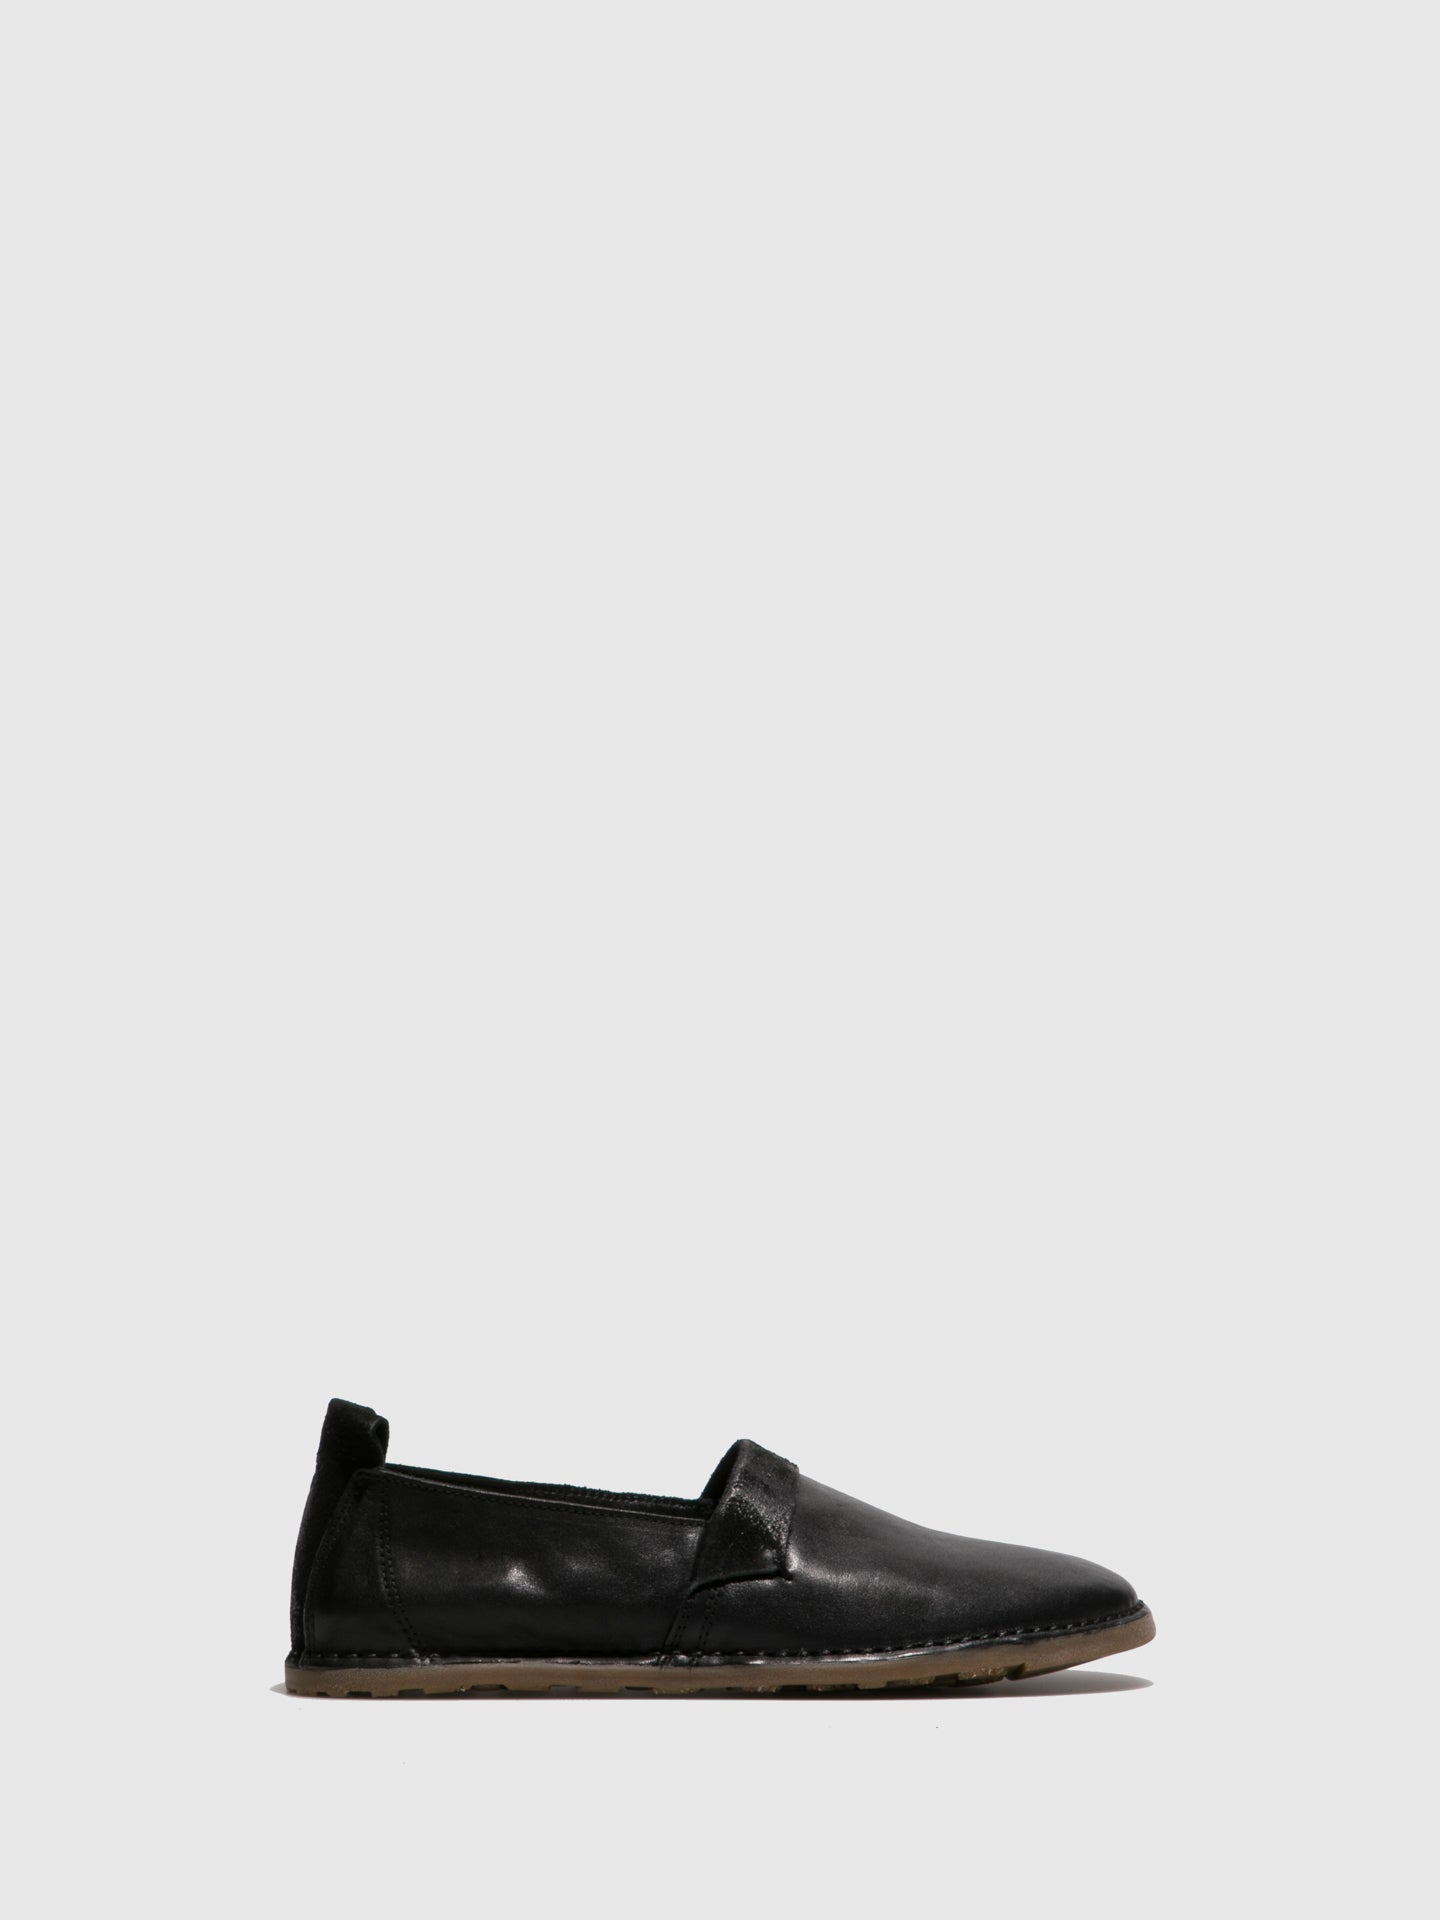 Fly London Black Slip-on Shoes